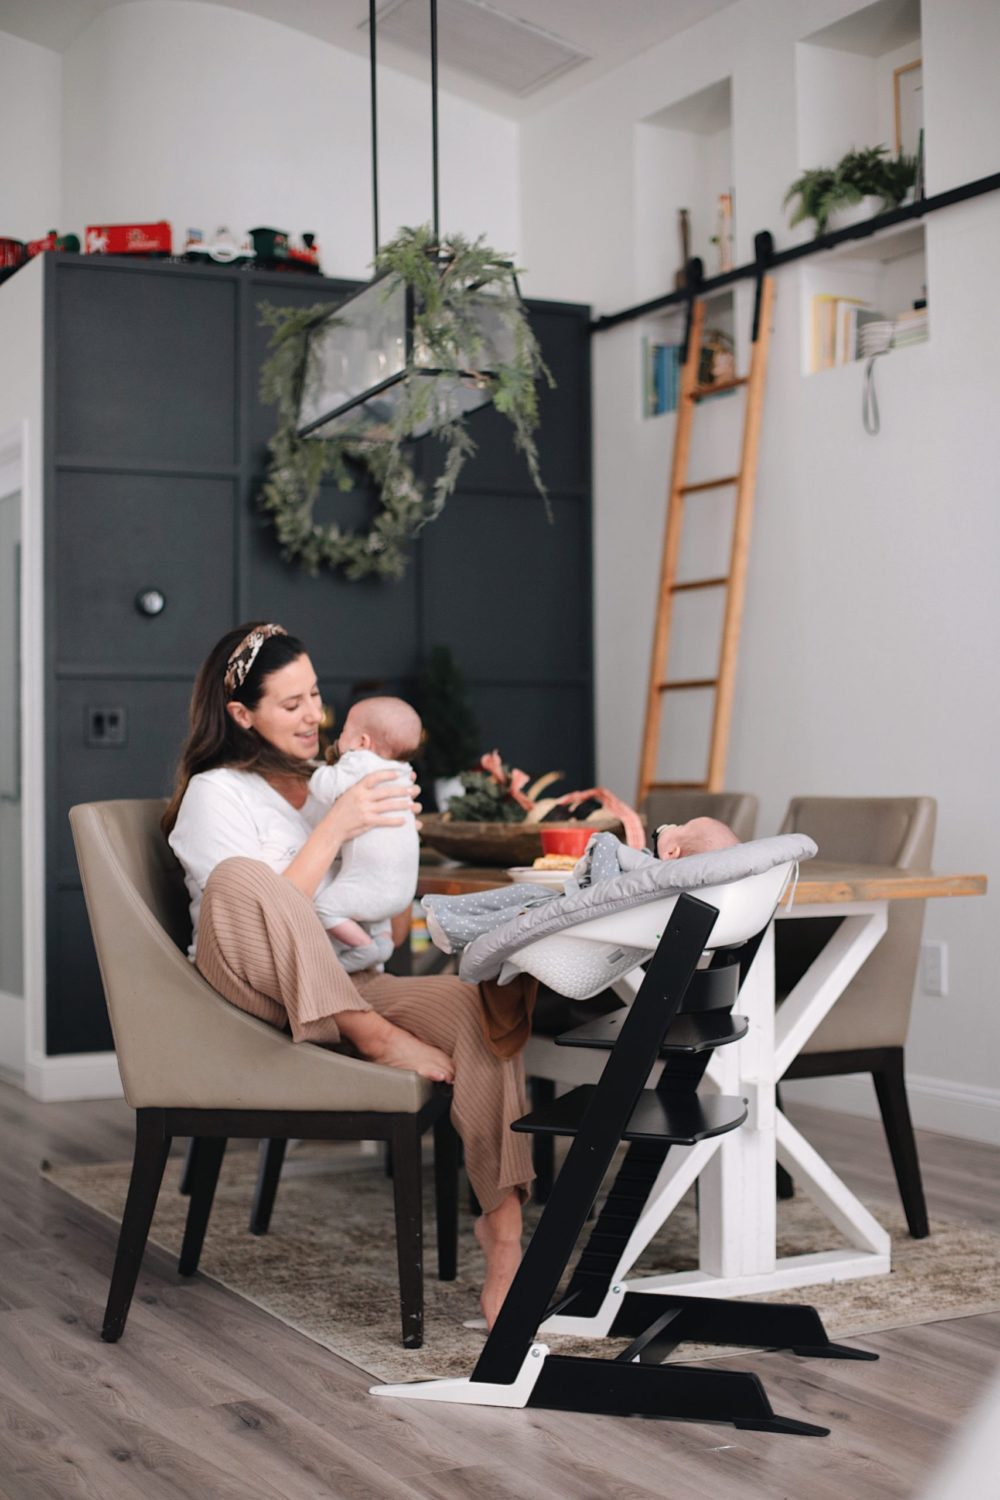 A DIY Grid Wood feature wall in black! | Gorgeous Wood Feature Wall + Shared Girl's Room Update by popular Florida home decor blog, Fresh Mommy Blog: image of a woman sitting at a dining table and holding her twin babies.